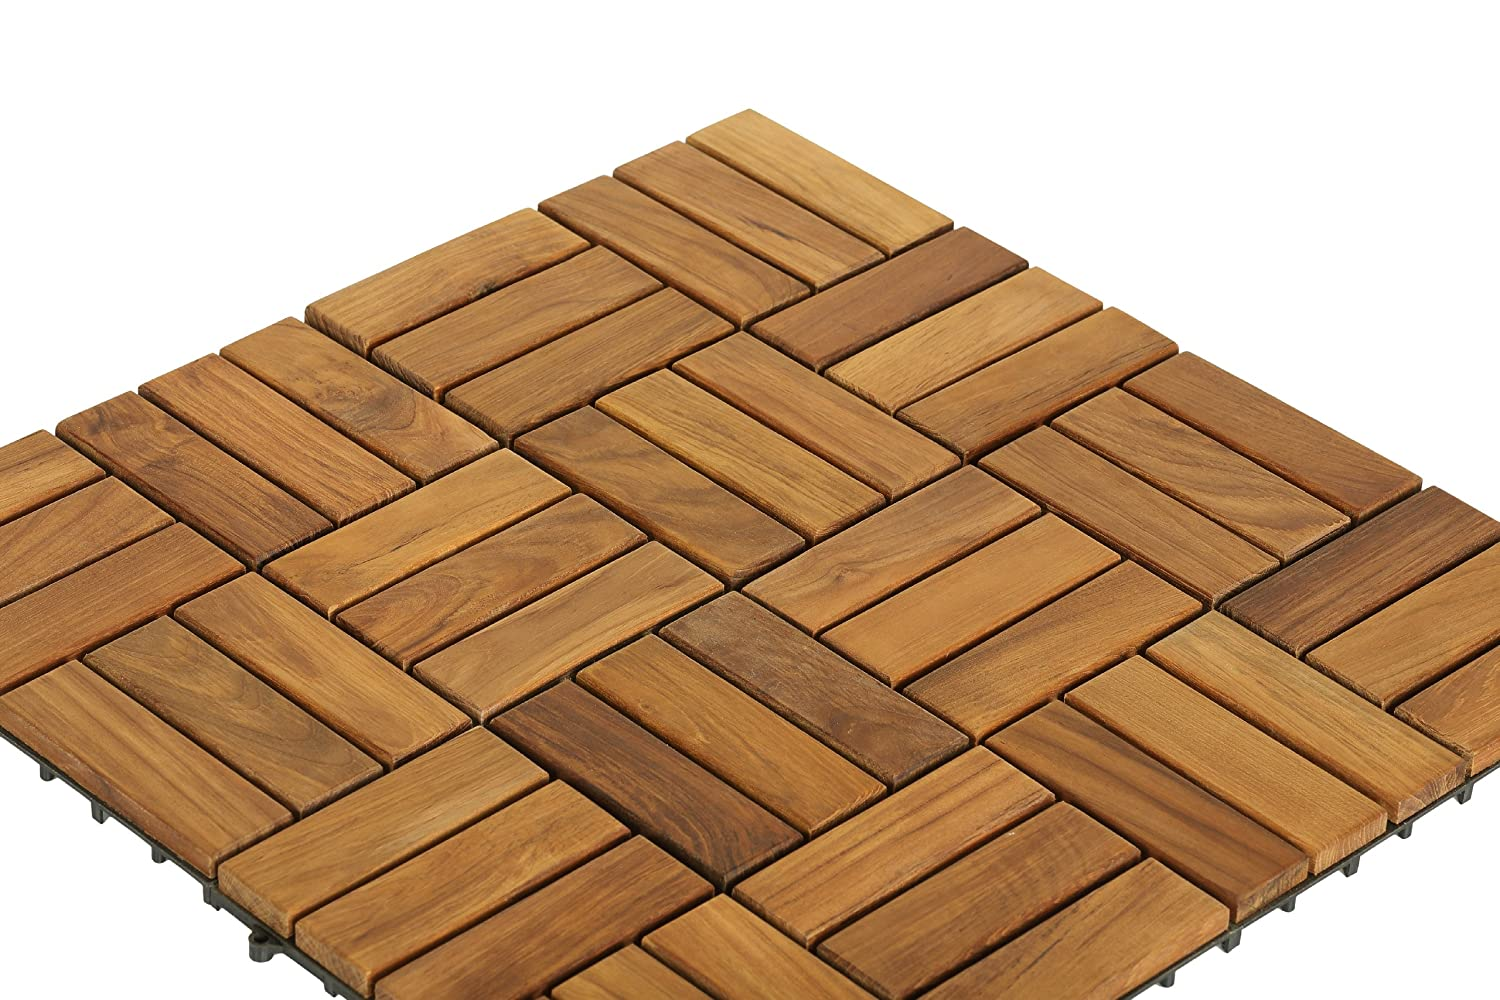 Bare Decor BAREWF2009 Solid Teak Wood Interlocking Flooring Tiles